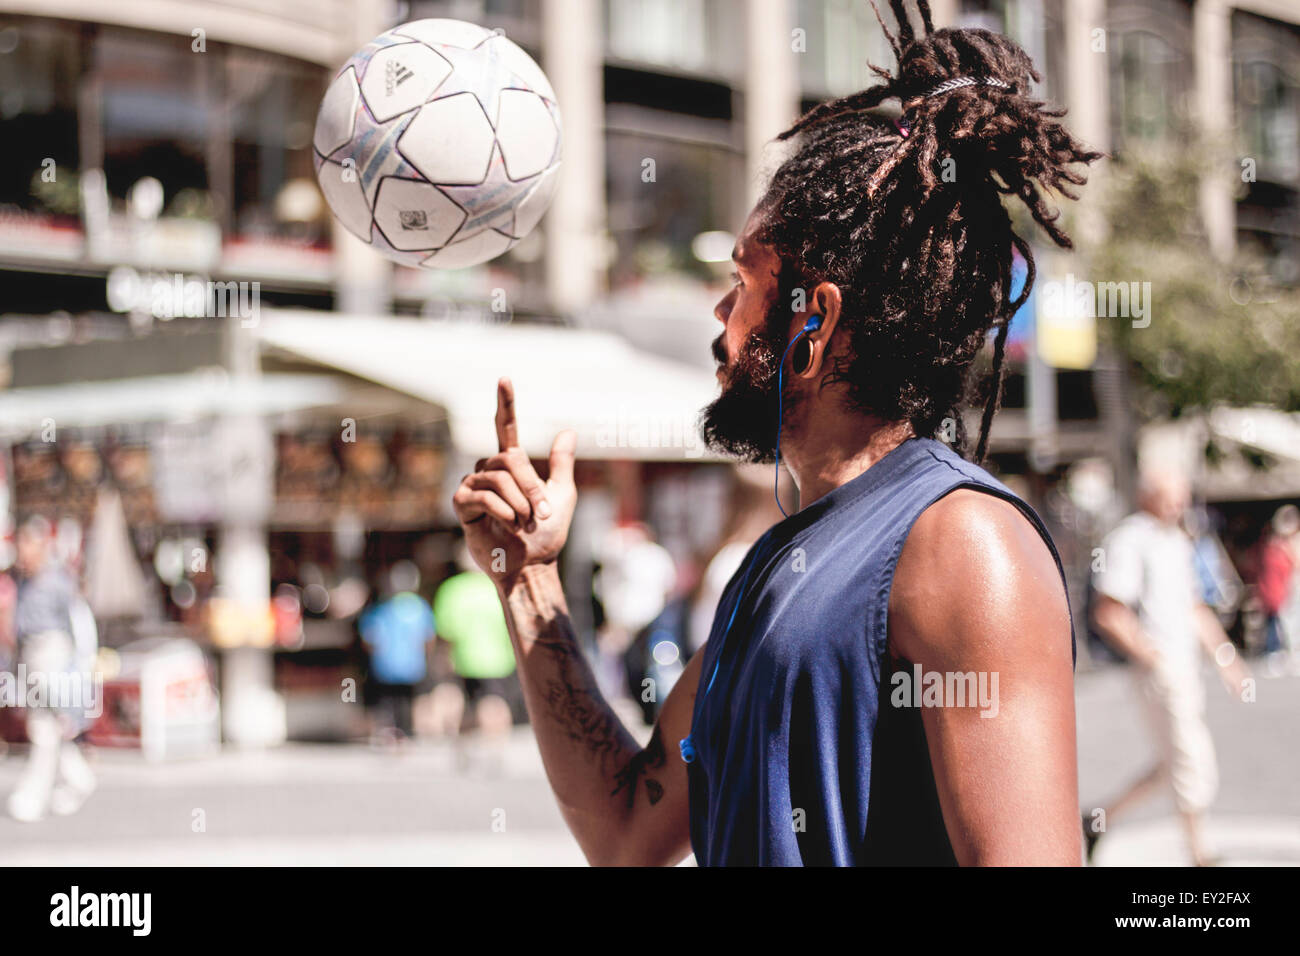 Young man doing balance tricks with his white and blue football in the center of Prague. Stock Photo